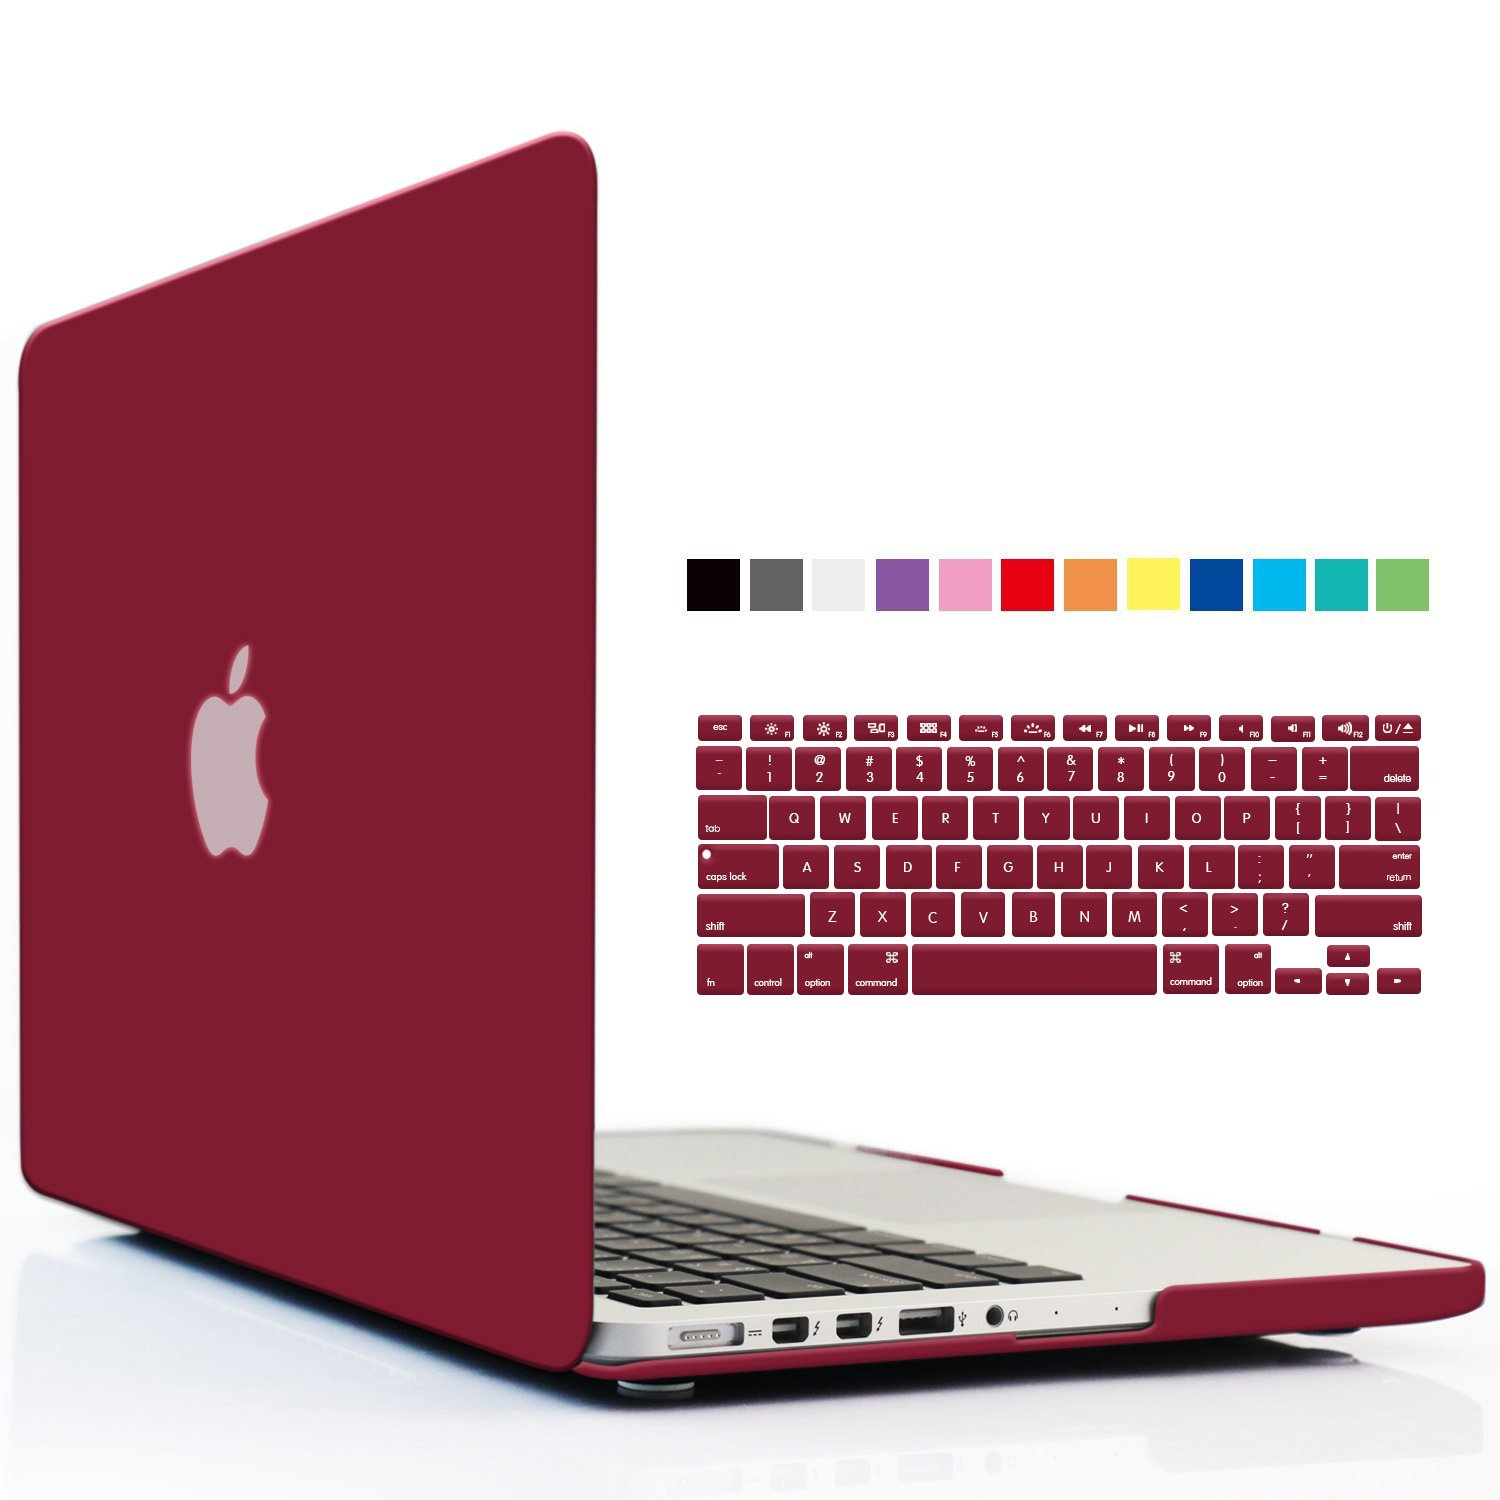 iBenzer - 2 in 1 Soft-Skin Smooth Finish Soft-Touch Plastic Hard Case Cover & Keyboard Cover for Macbook Pro 13.3